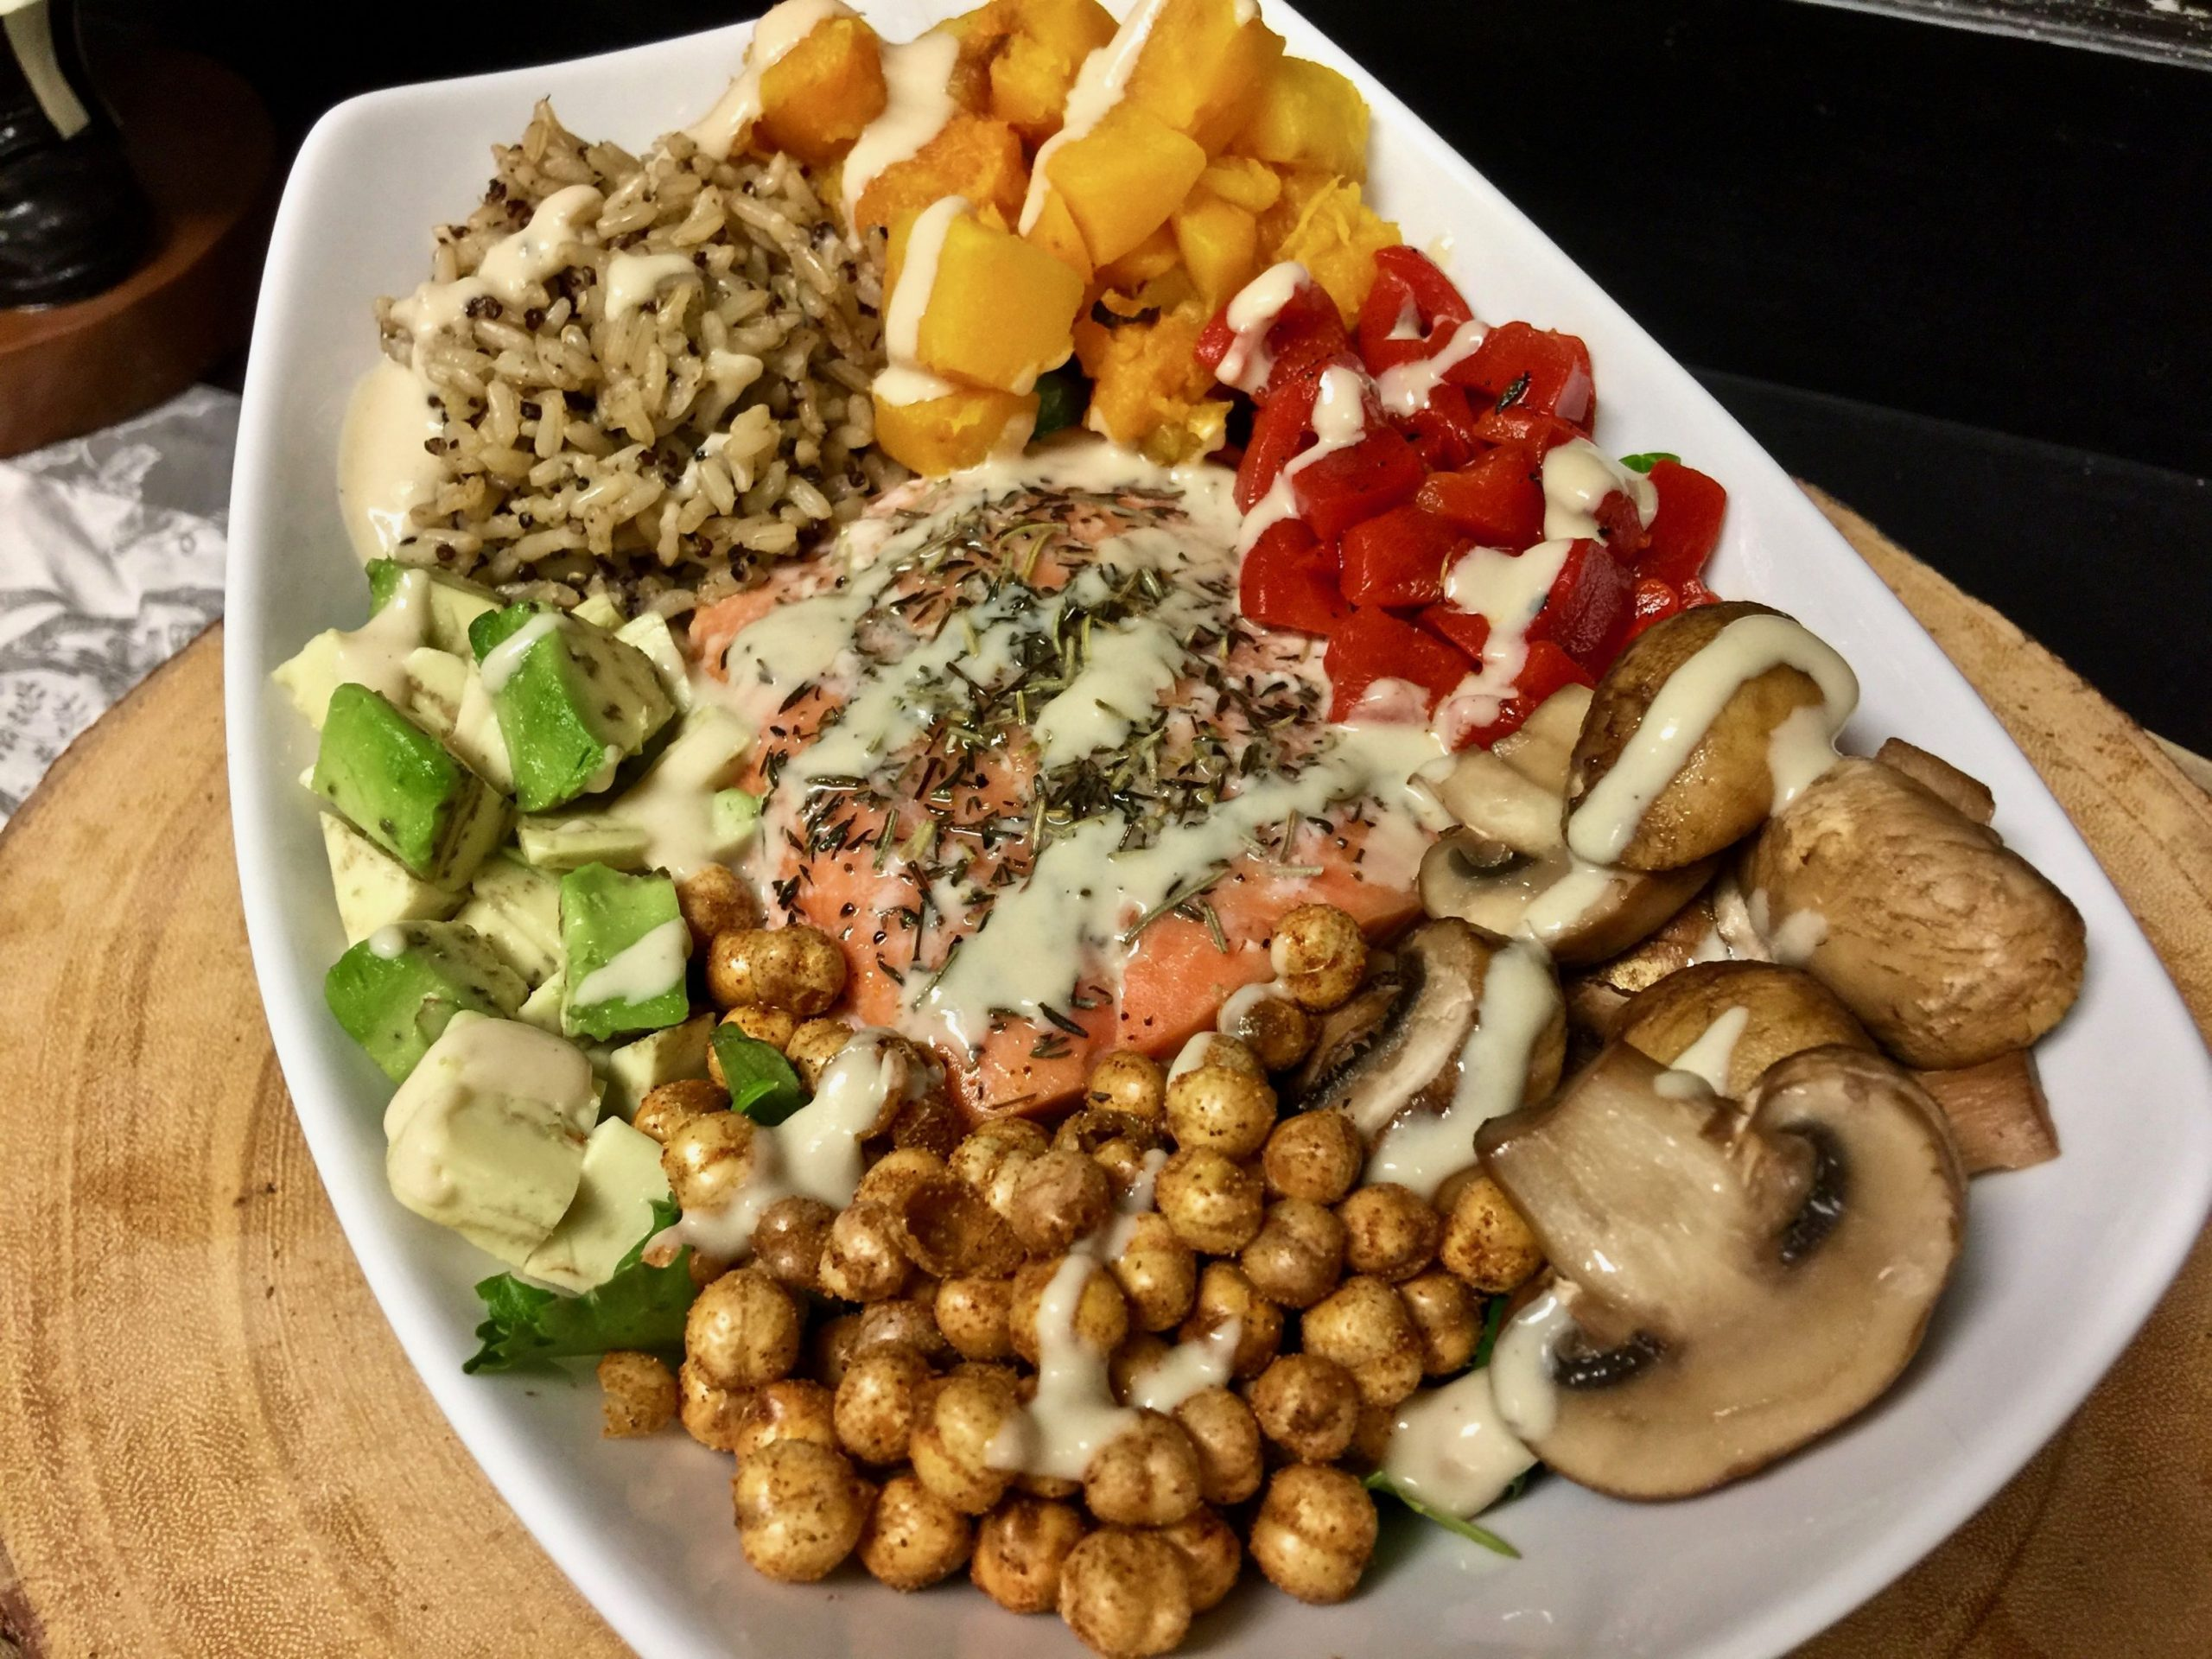 Easy Heart-Healthy Recipes for Every Meal | A Healthier Michigan - Healthy Recipes Heart